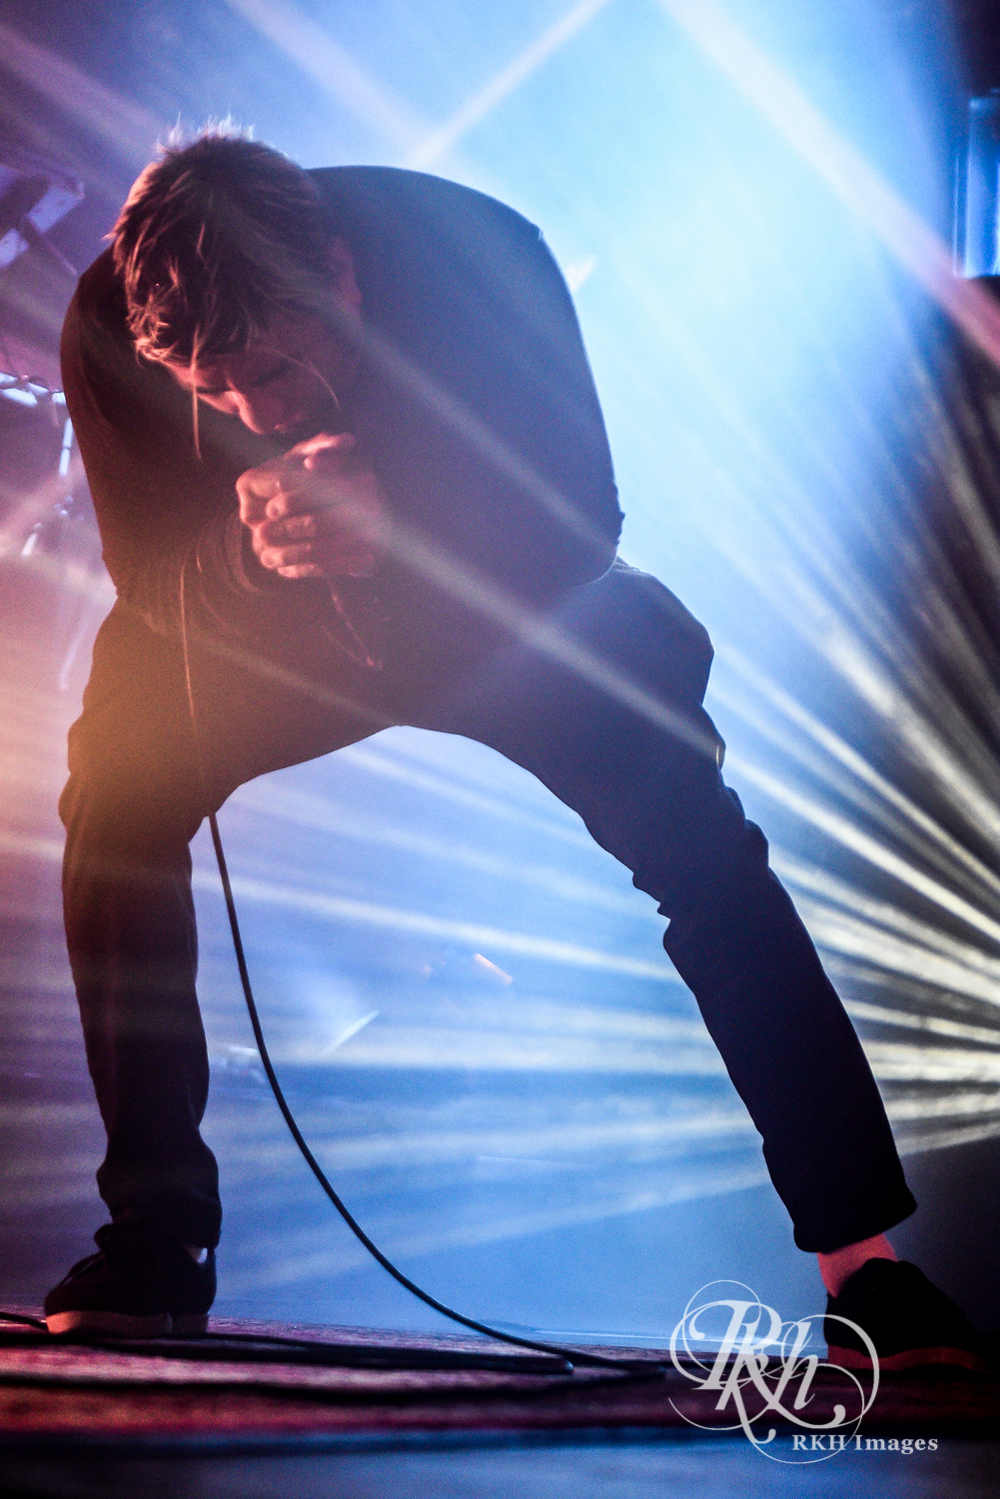 deftones rkh images (19 of 33).jpg